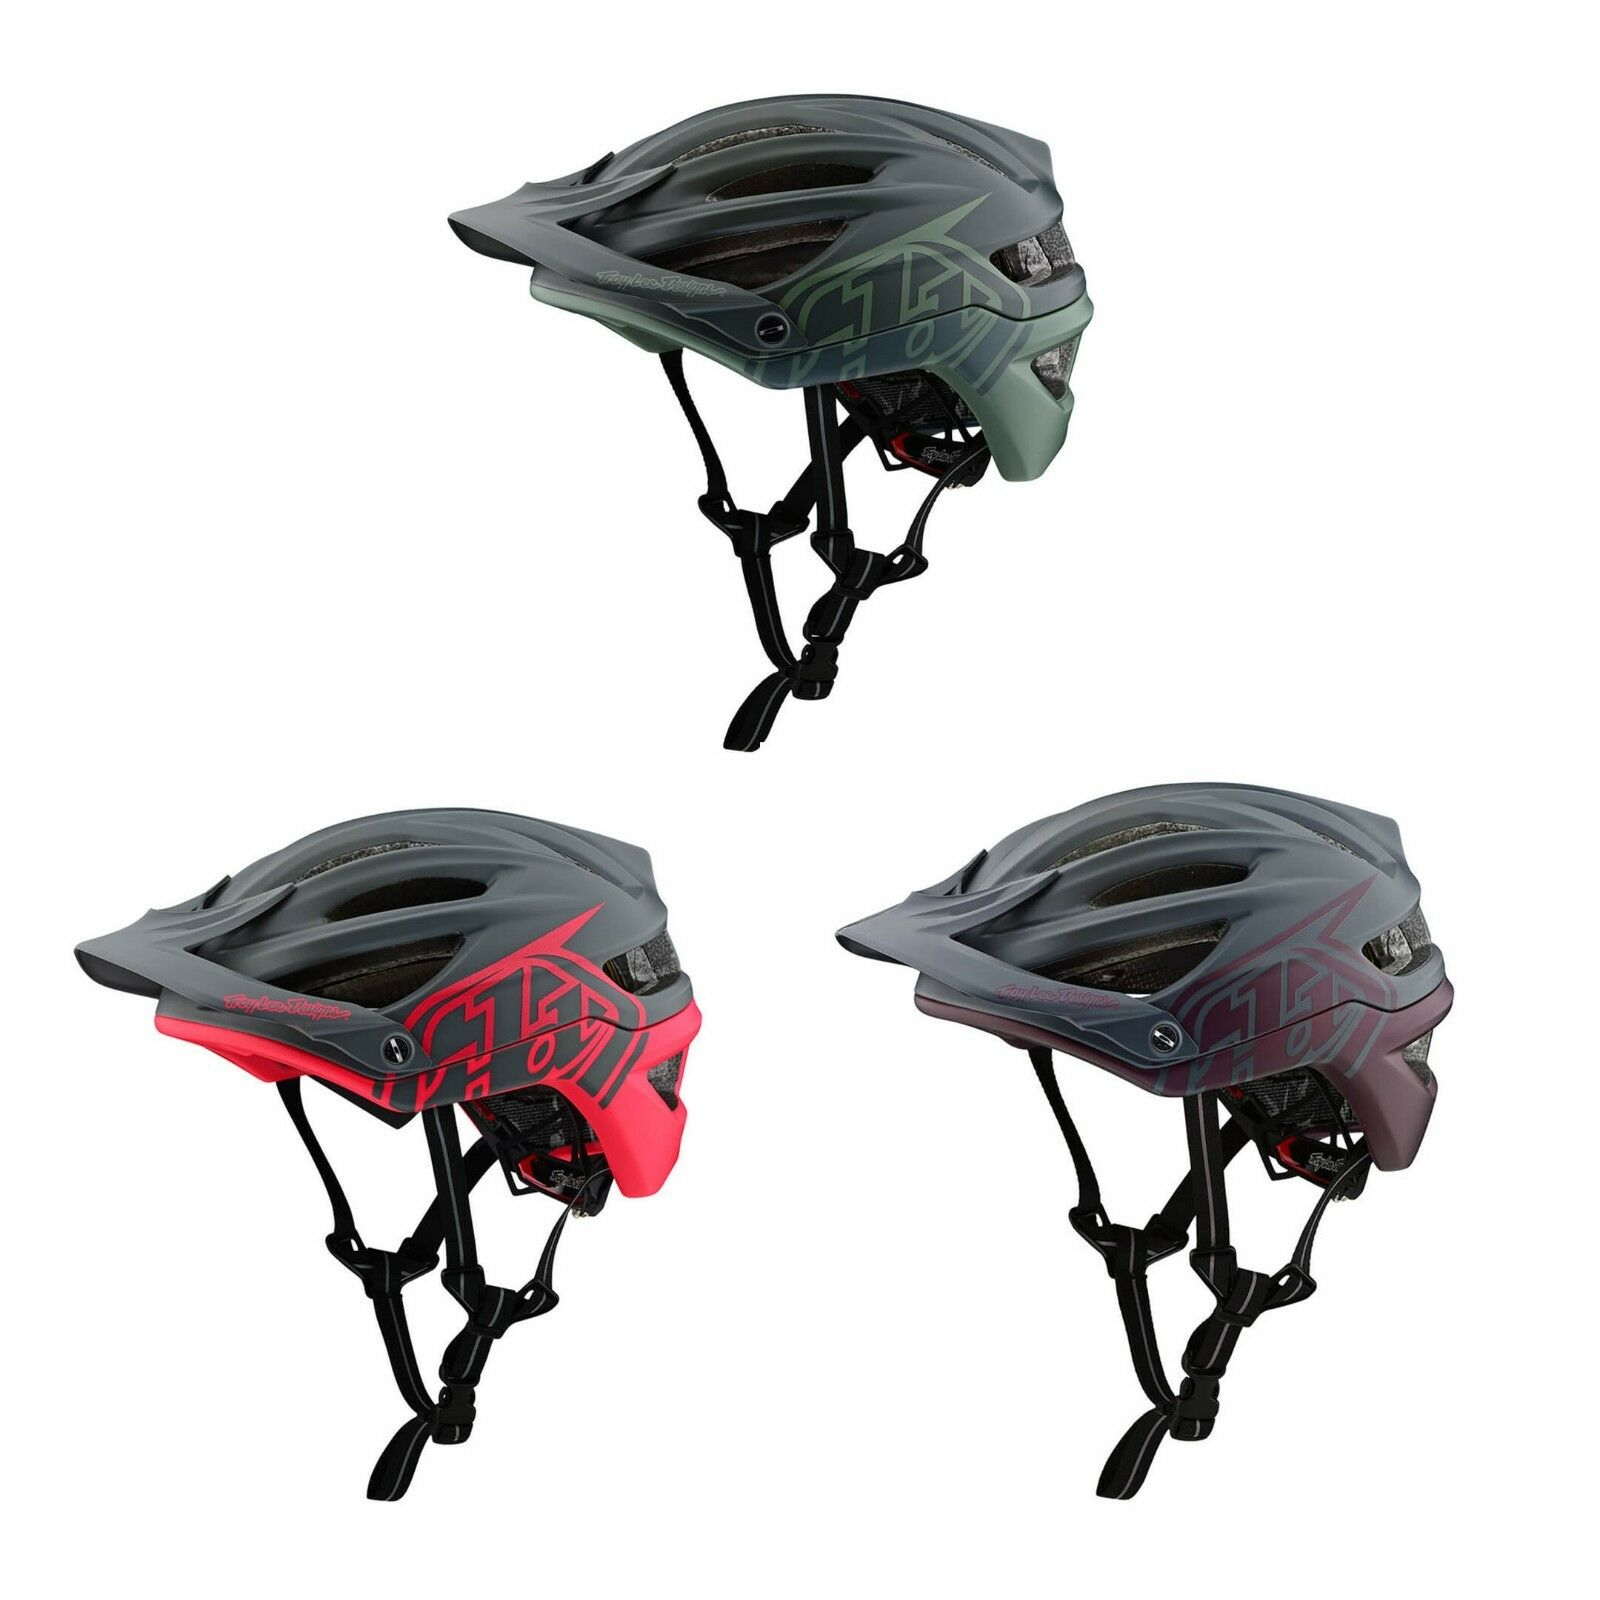 2019 Troy Lee Designs A2 Decoy Mips Mountain Bike Casco bicicletta ciclismo ciclo